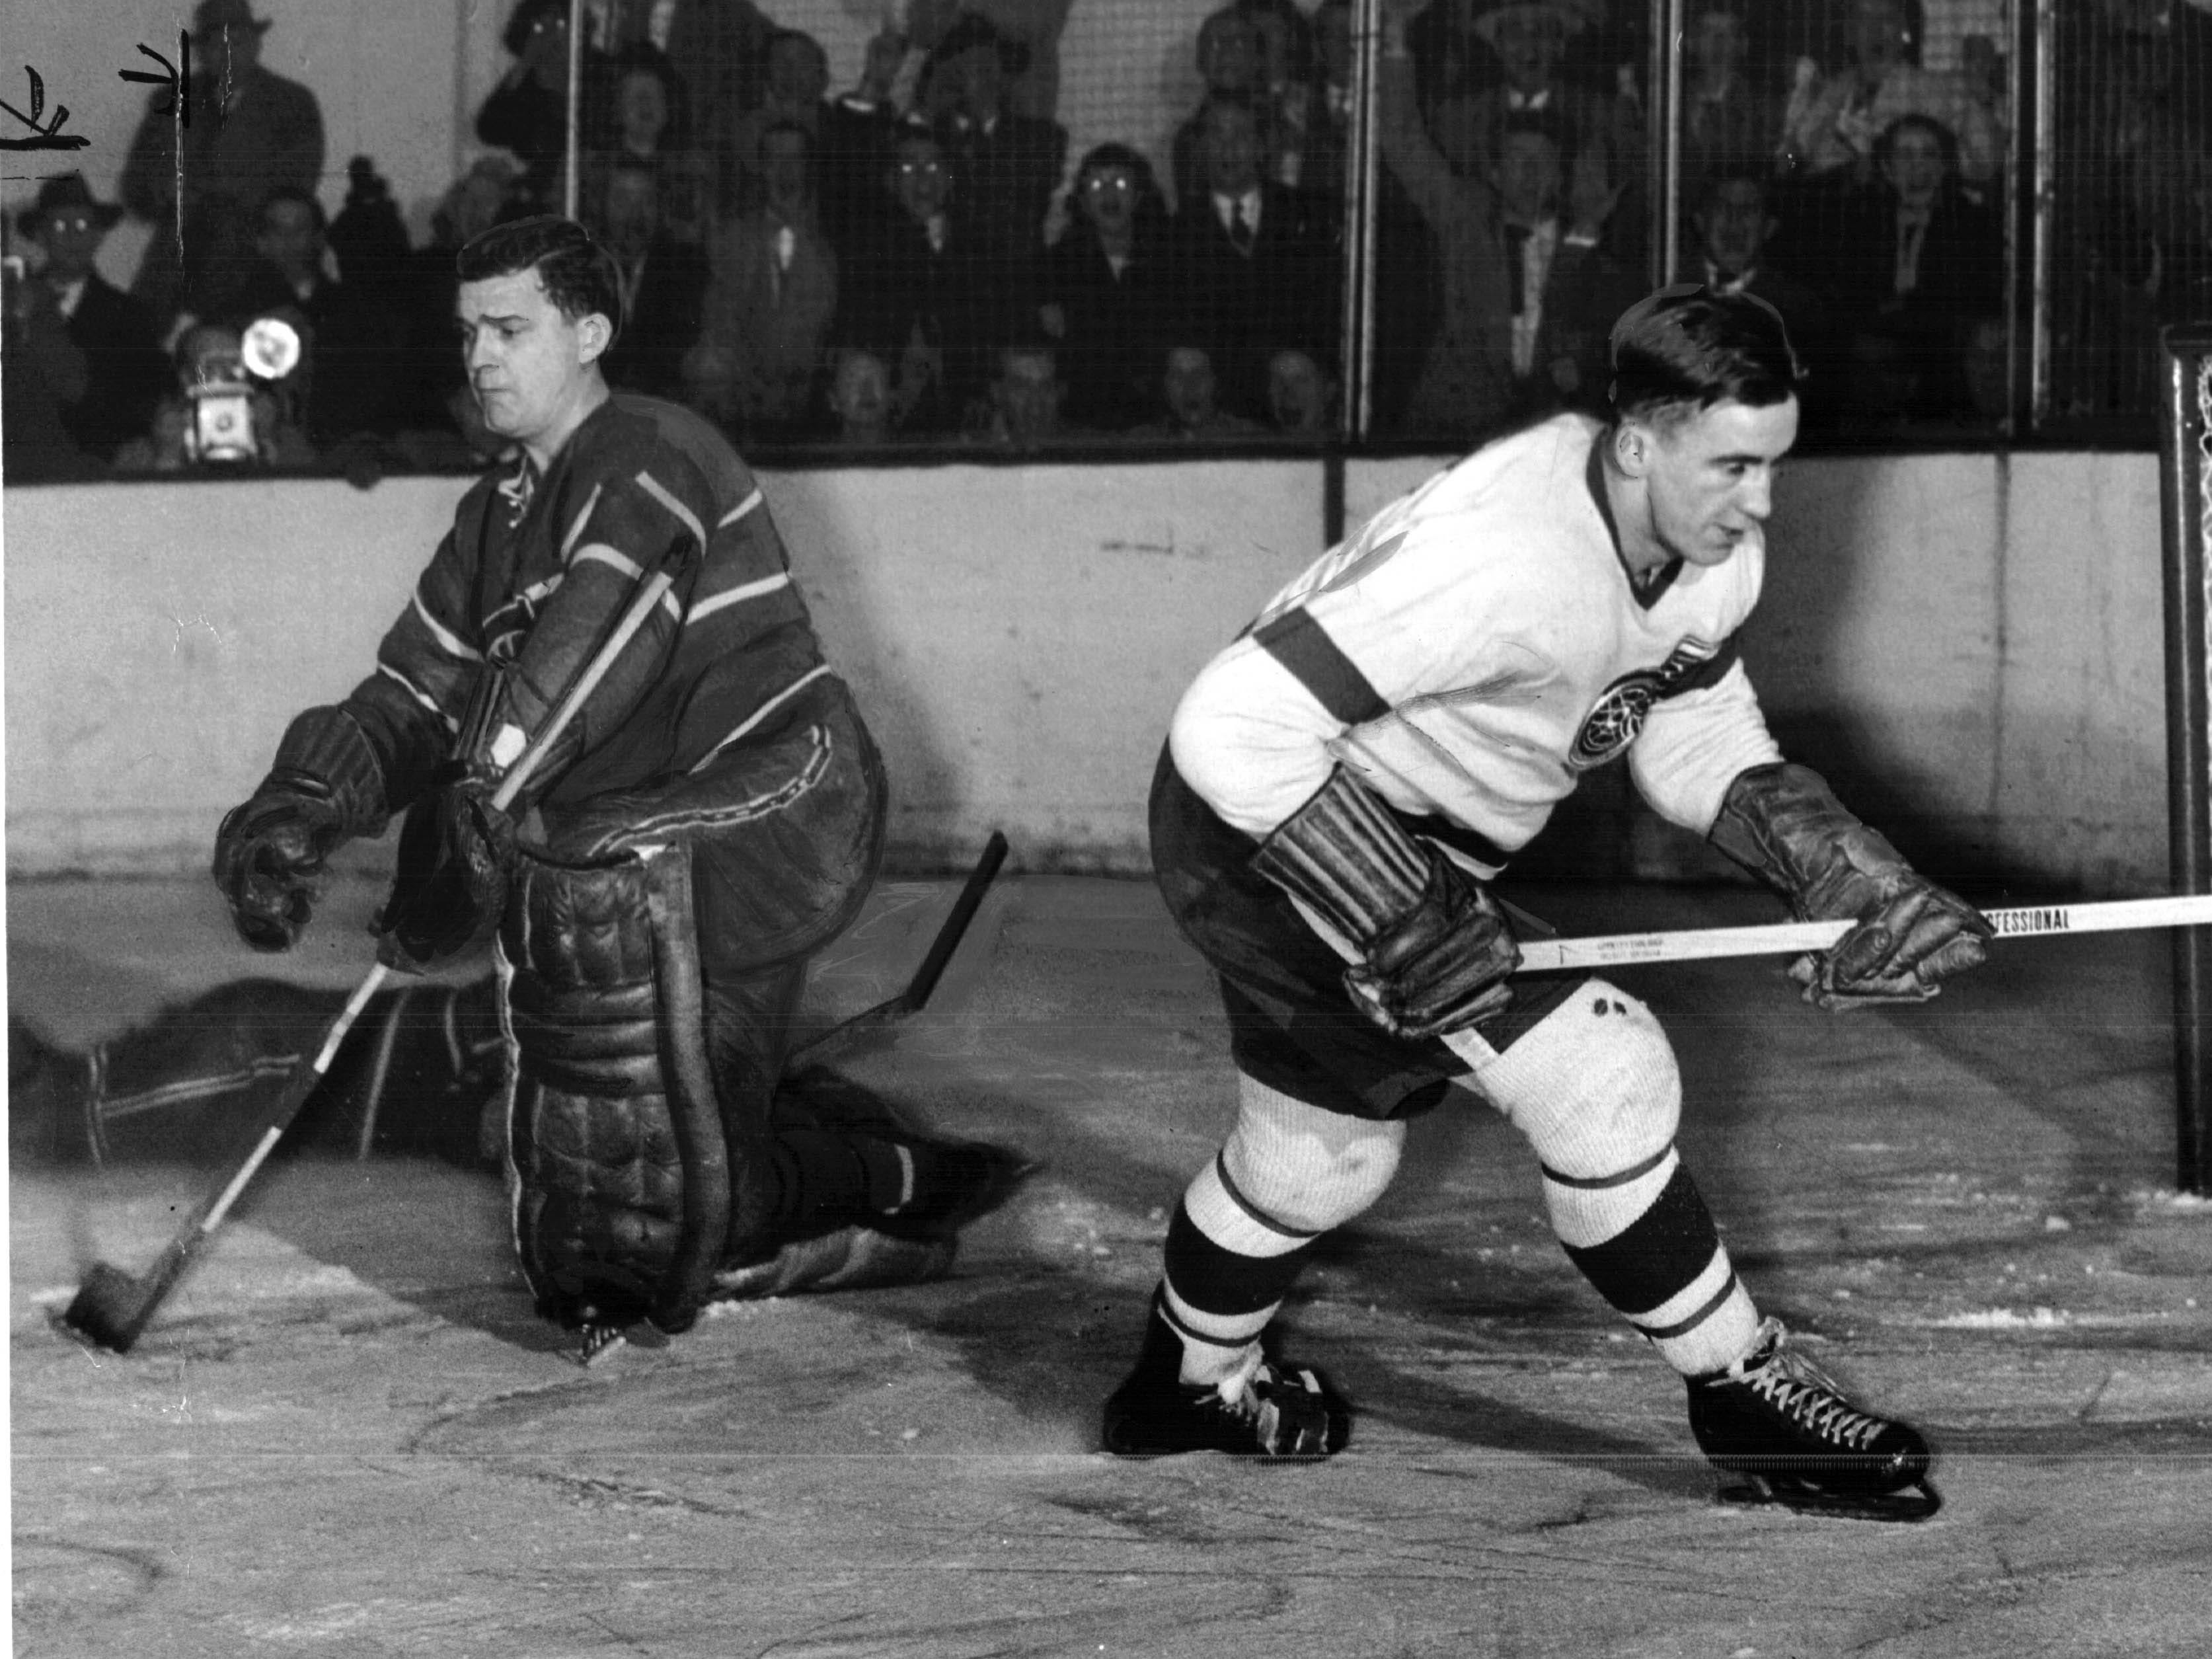 Red Wings Ted Lindsay nonchalantly skates past the net as the puck heads for open net, date unknown.